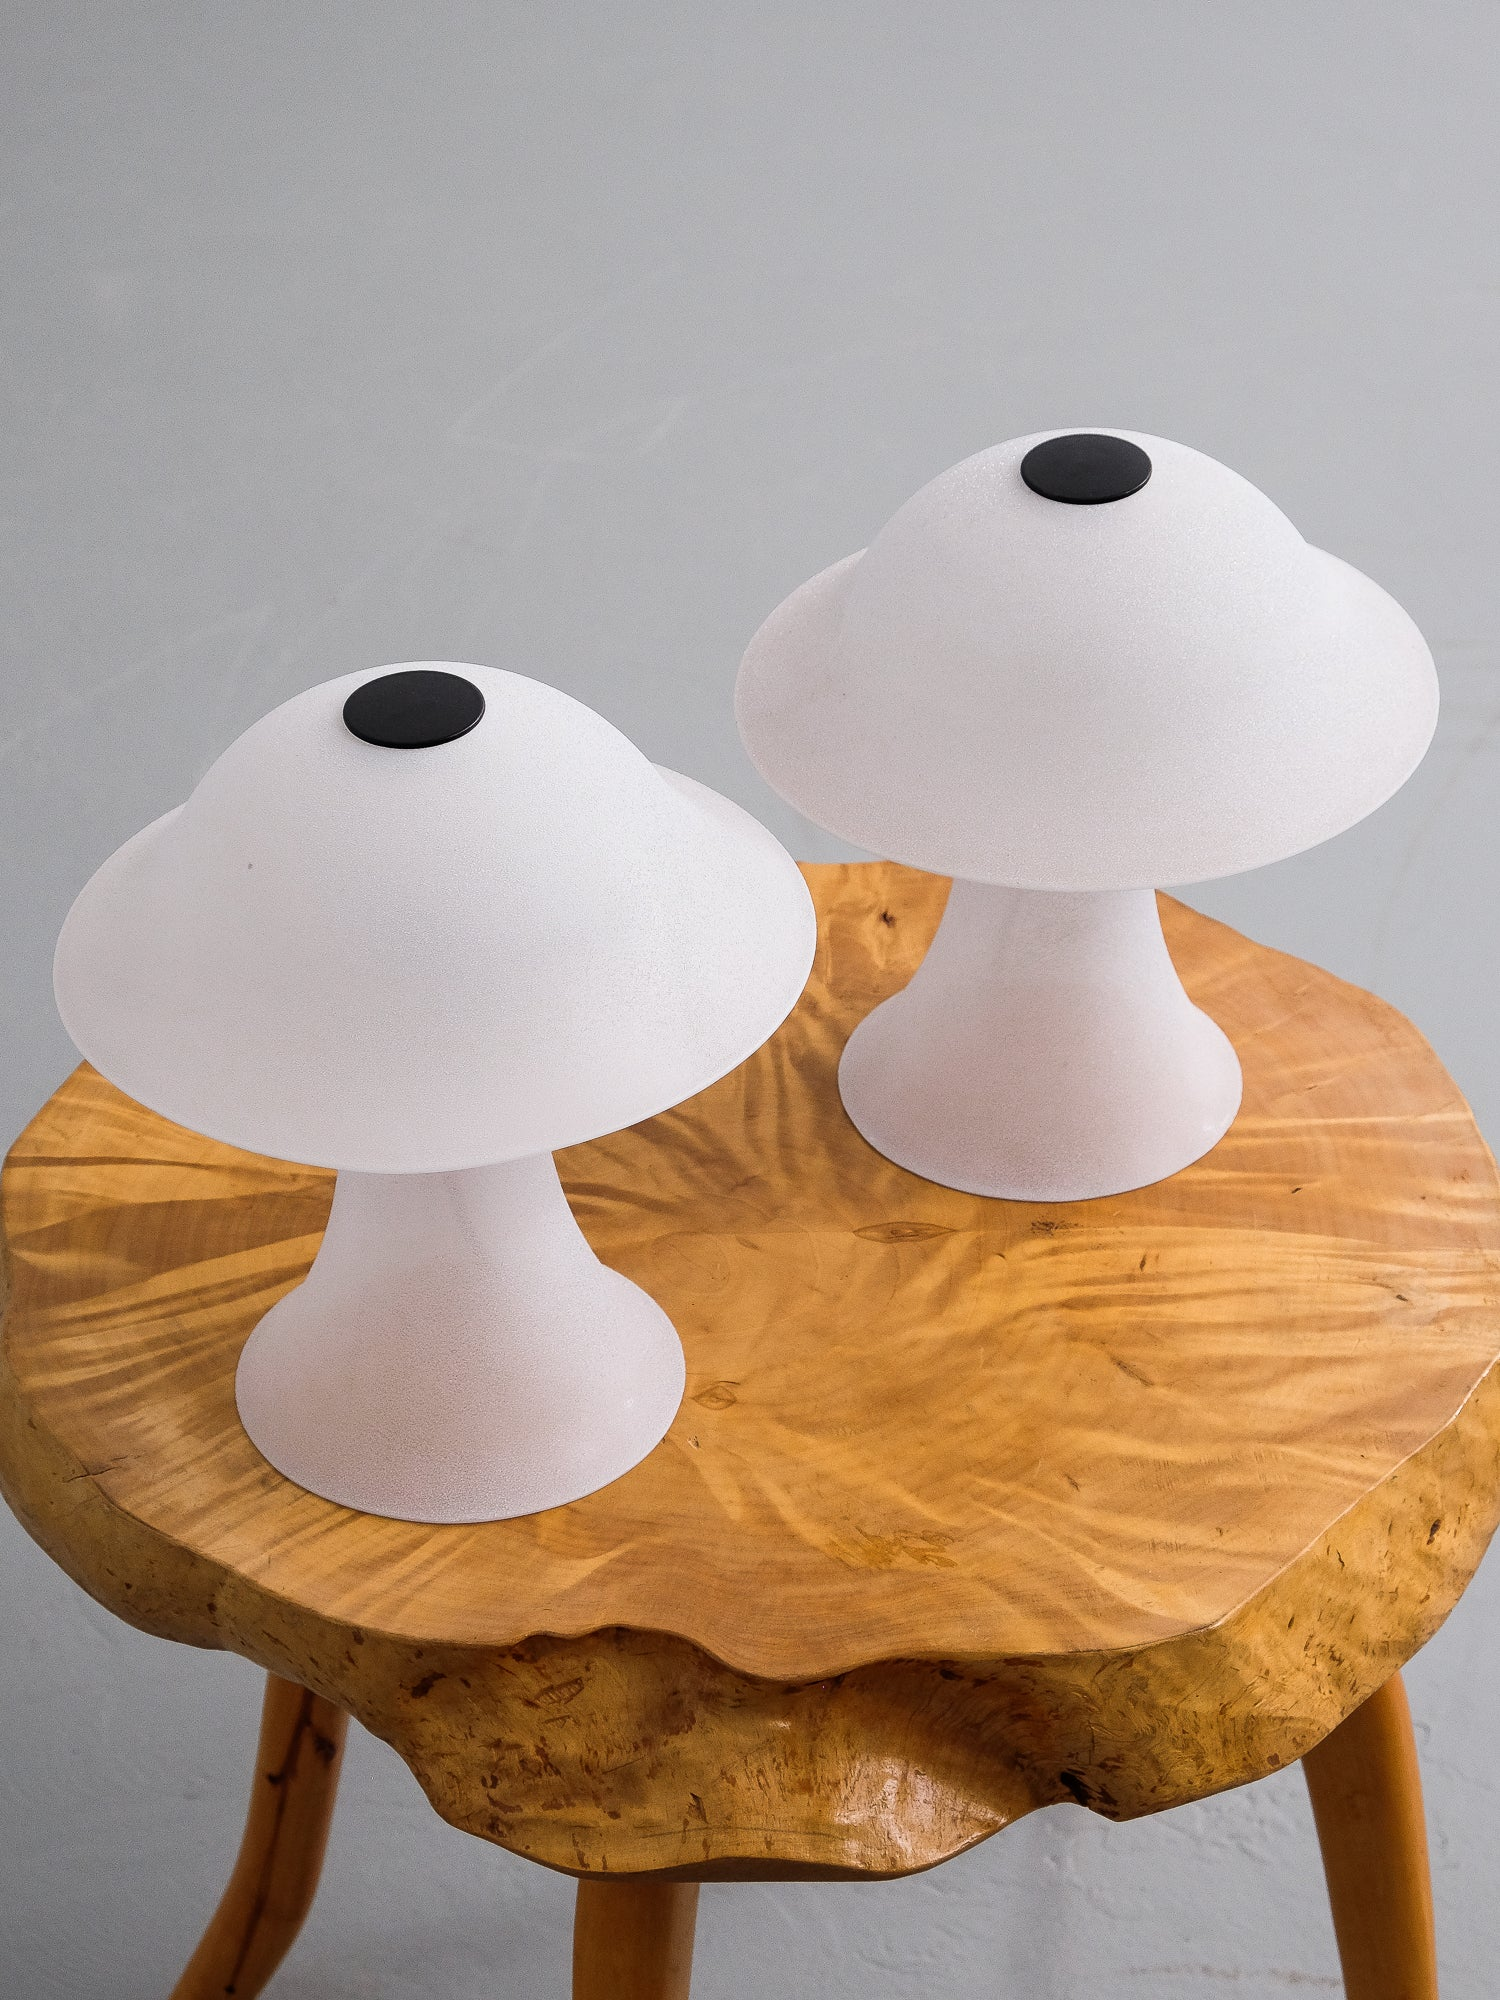 Satin Glass Mushroom Table Lamps By Peill Putzler, 1970s